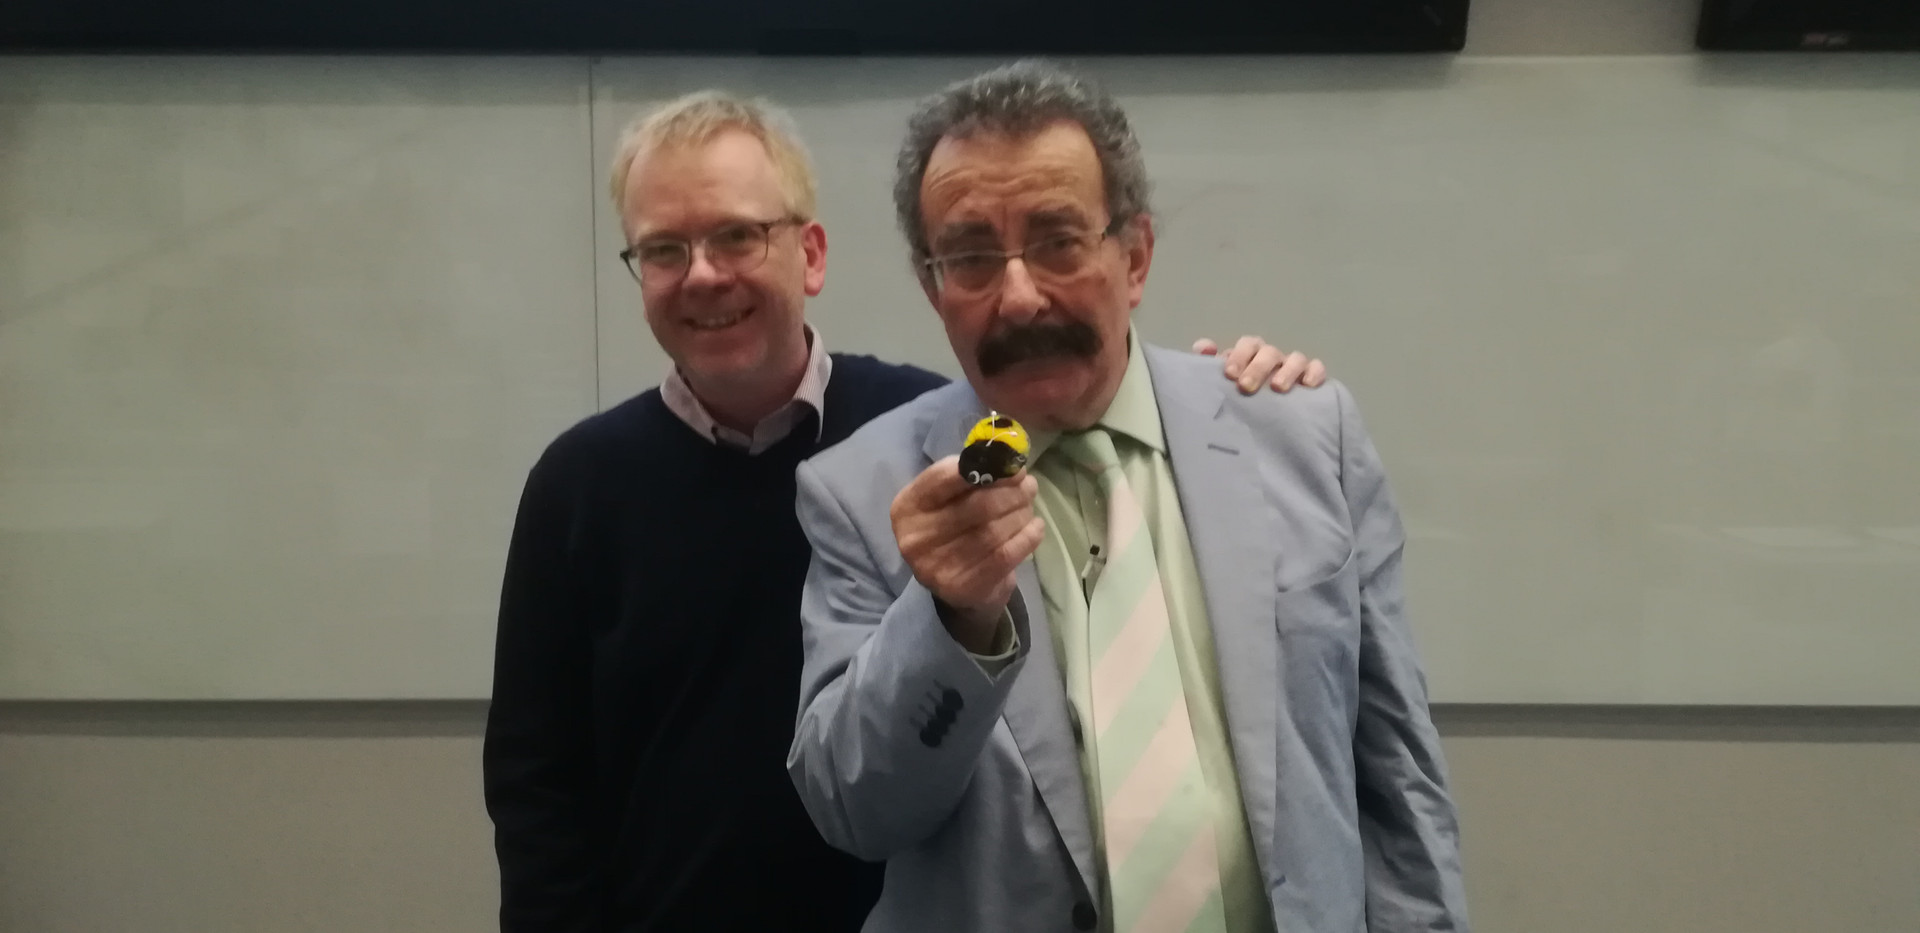 Me and Robert Winston 12 March 2019.jpg